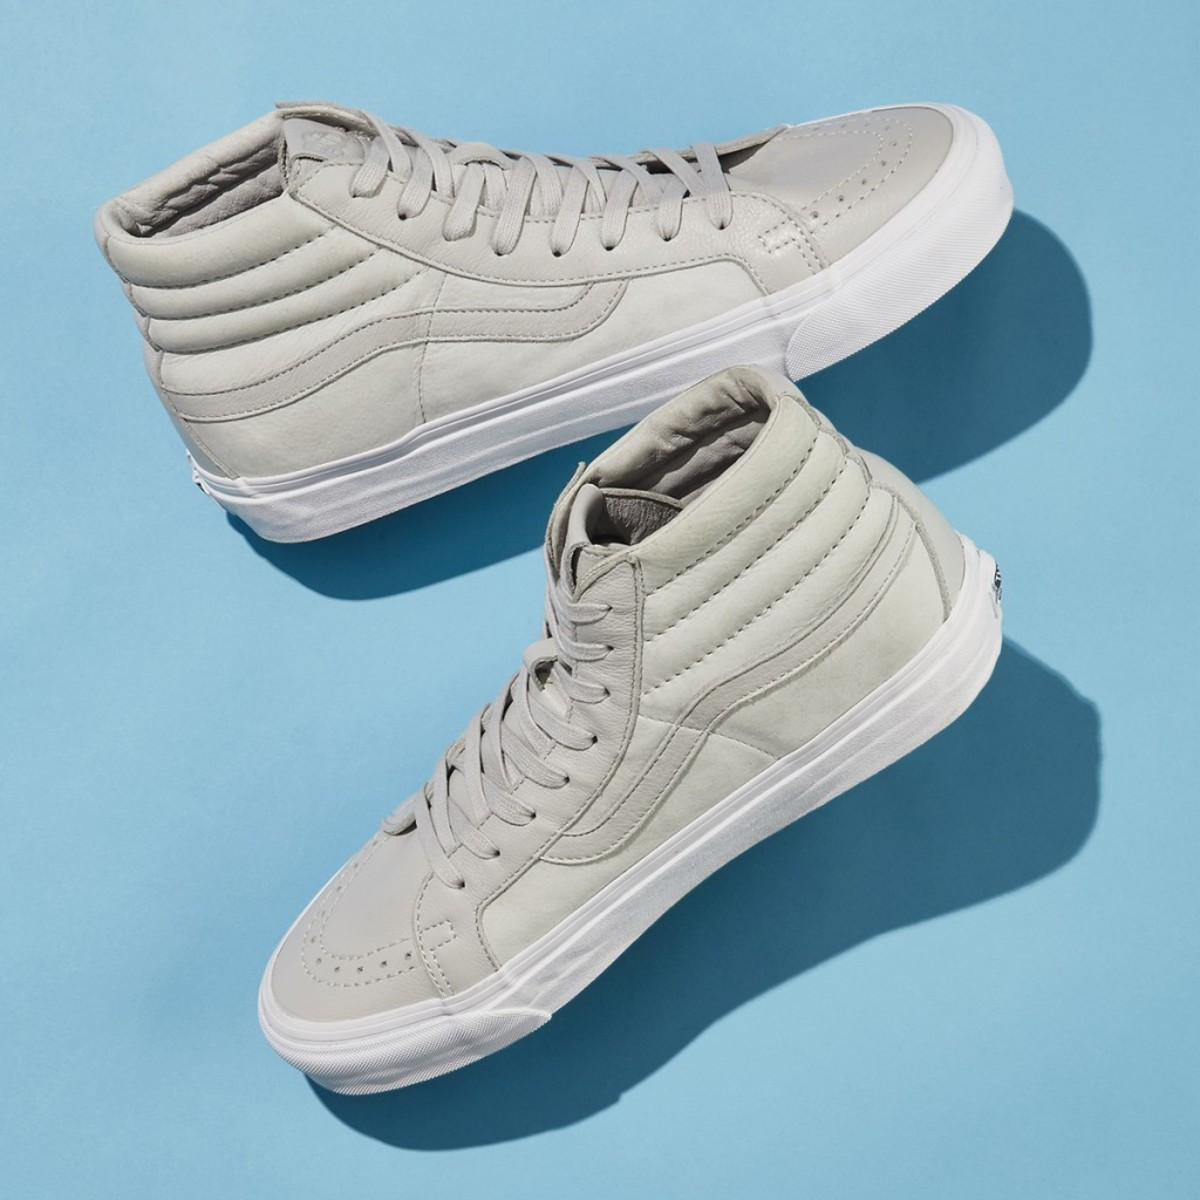 barneys-vans-2017-bny-sole-series-collaboration-03